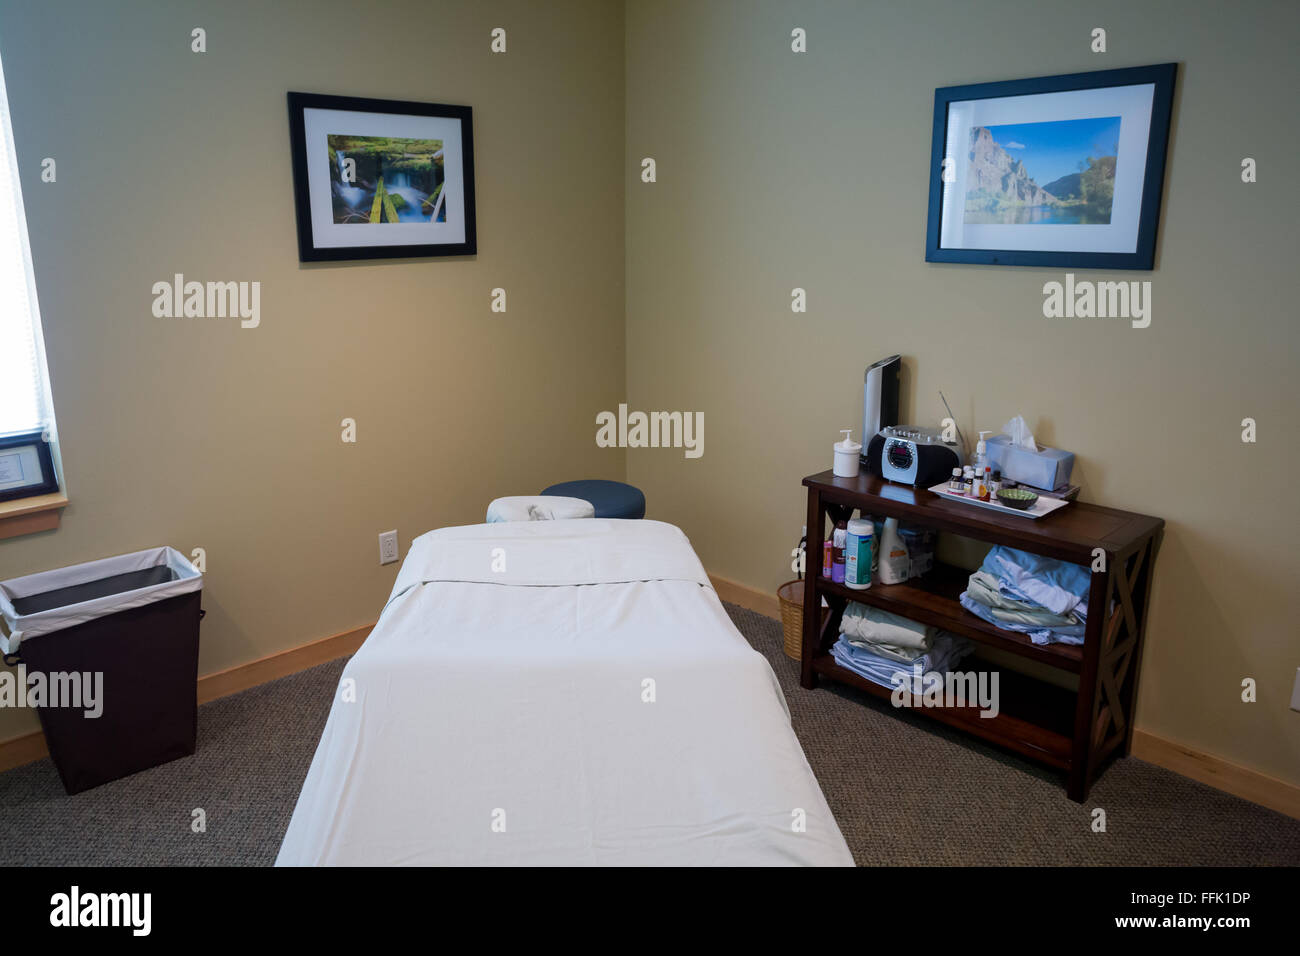 SPRINGFIELD, OR - AUGUST 20, 2014: Massage room with specialized table bed at a doctor's office in Oregon. - Stock Image